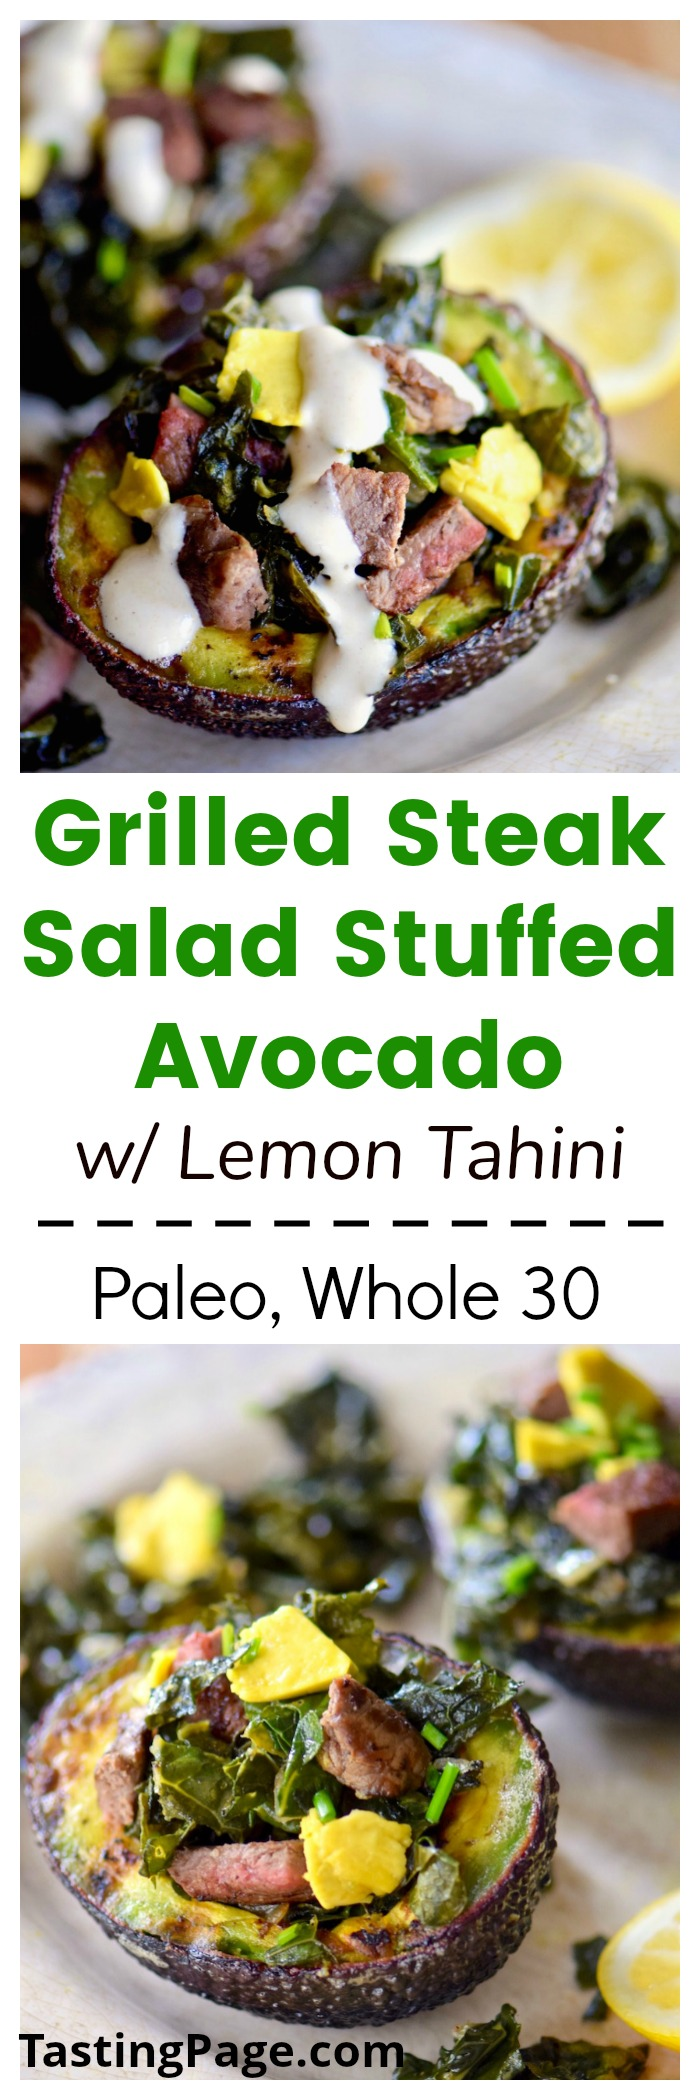 Grilled steak salad stuffed avocado - paleo, whole 30, gluten free, dairy free | TastingPage.com